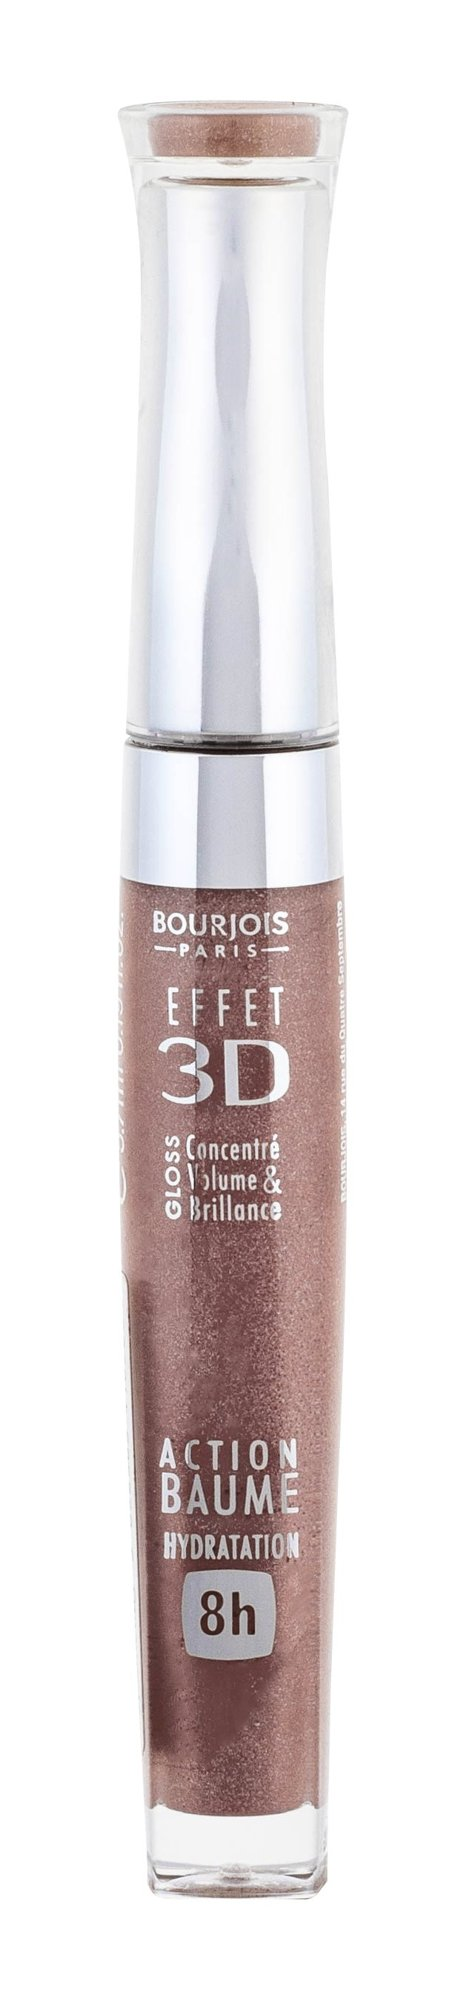 BOURJOIS Paris 3D Effet Cosmetic 5,7ml 33 Brun Poetic